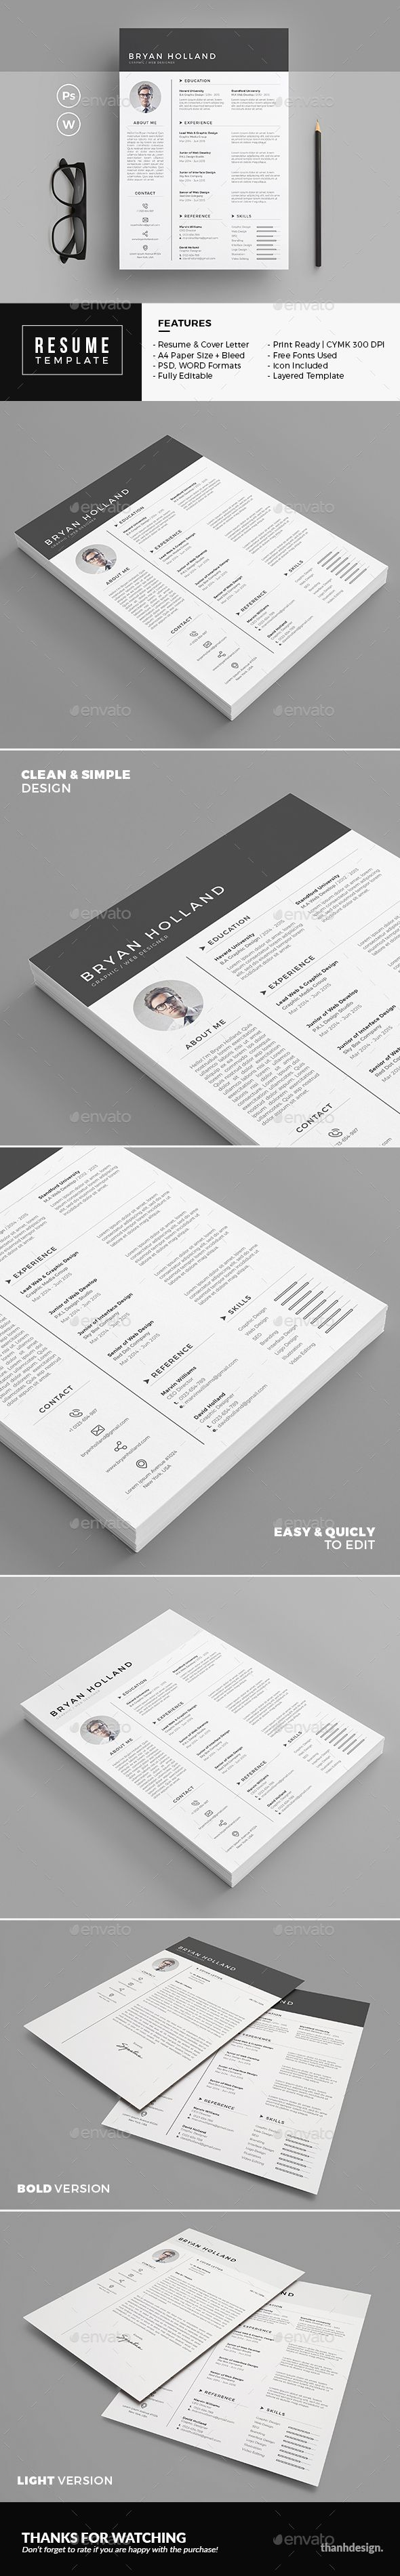 Simple Resume Templates%0A Resume